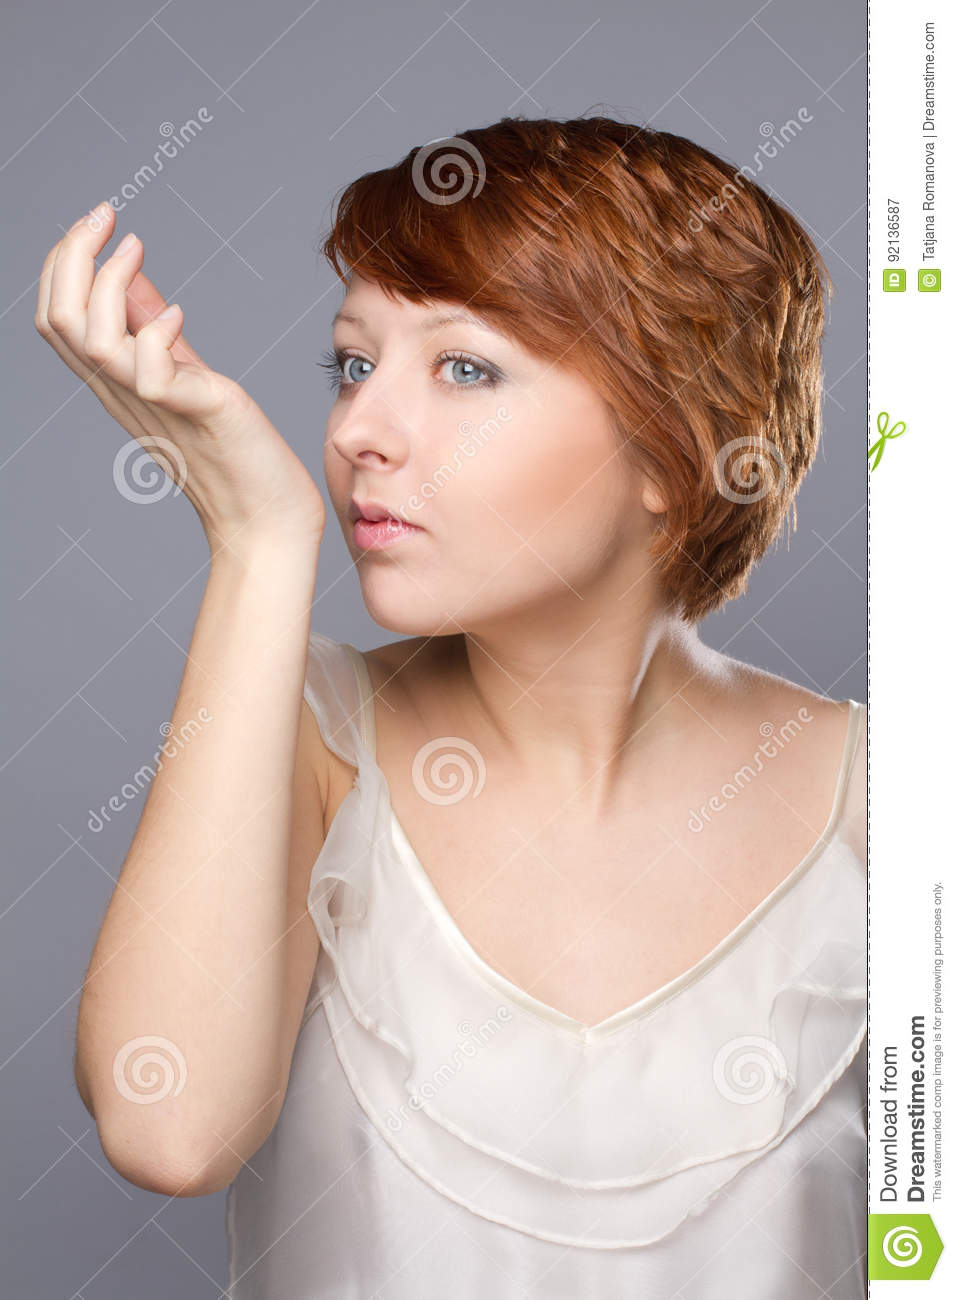 Young woman smells pafrume on her hand